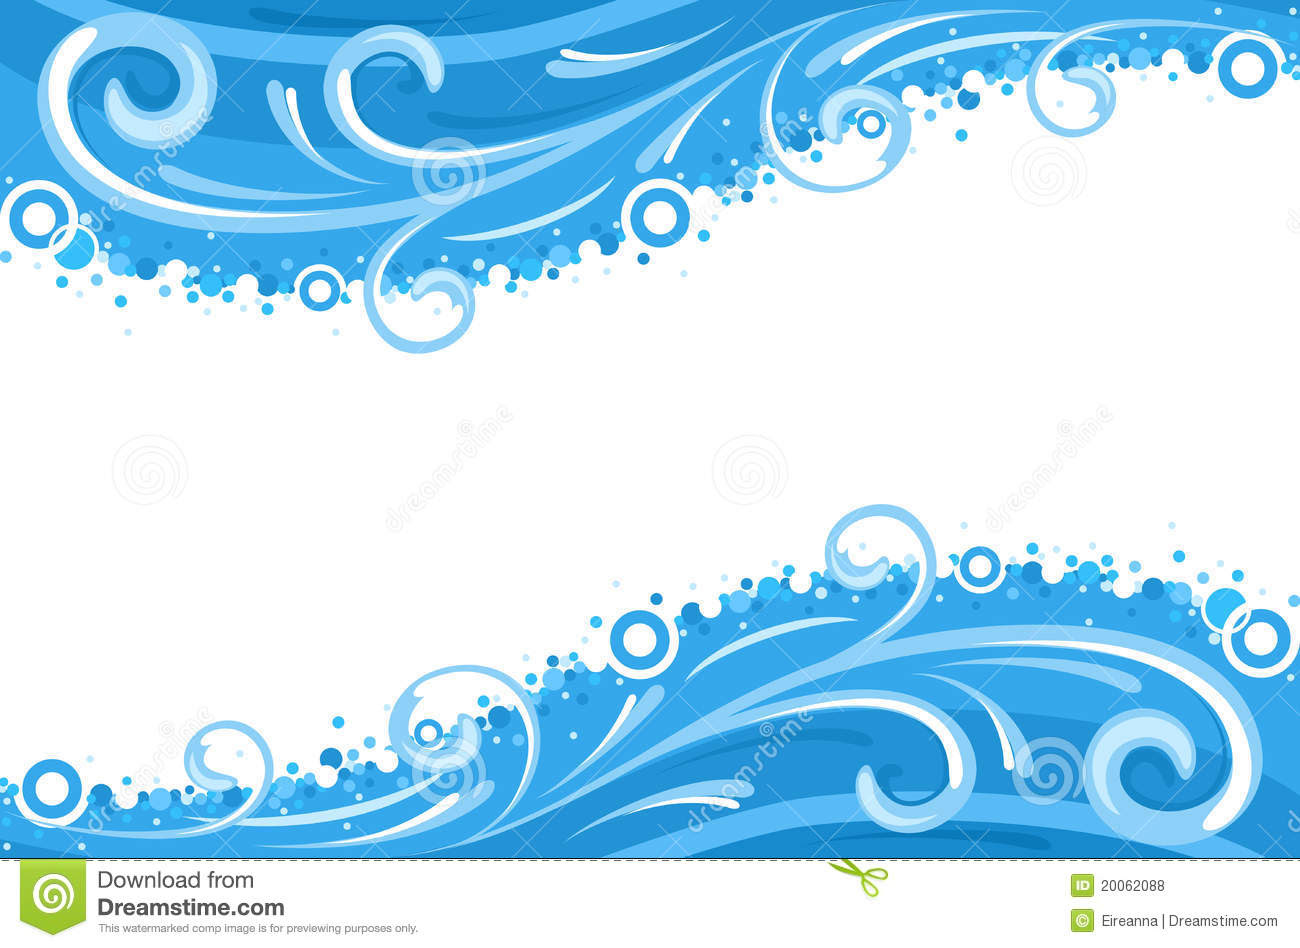 Water Wallpaper Borders